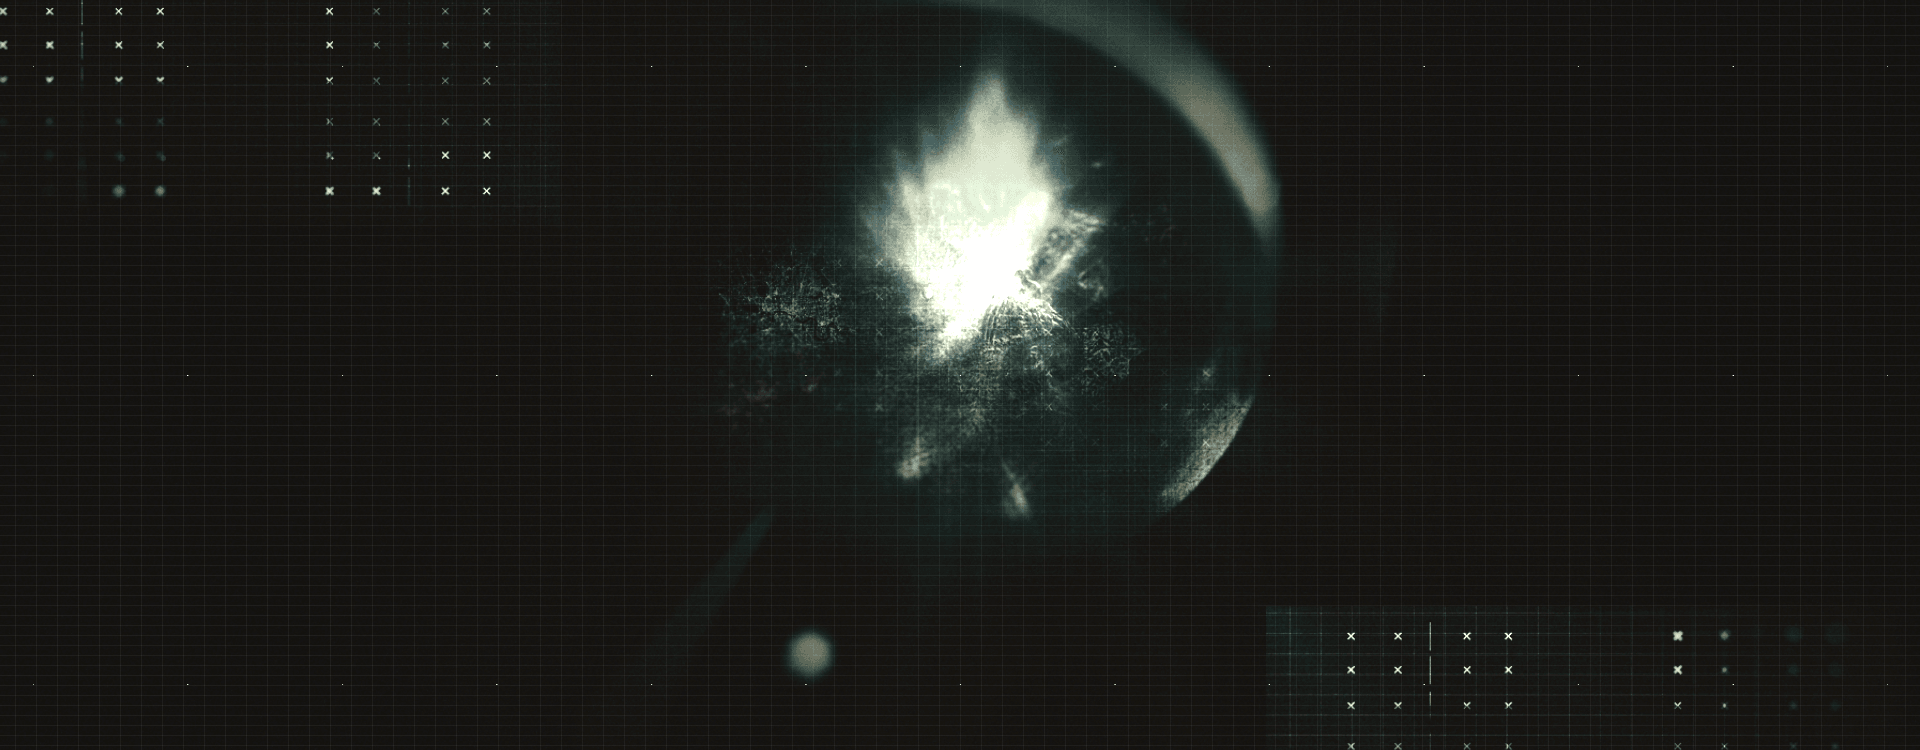 outerWorld_10_compressed